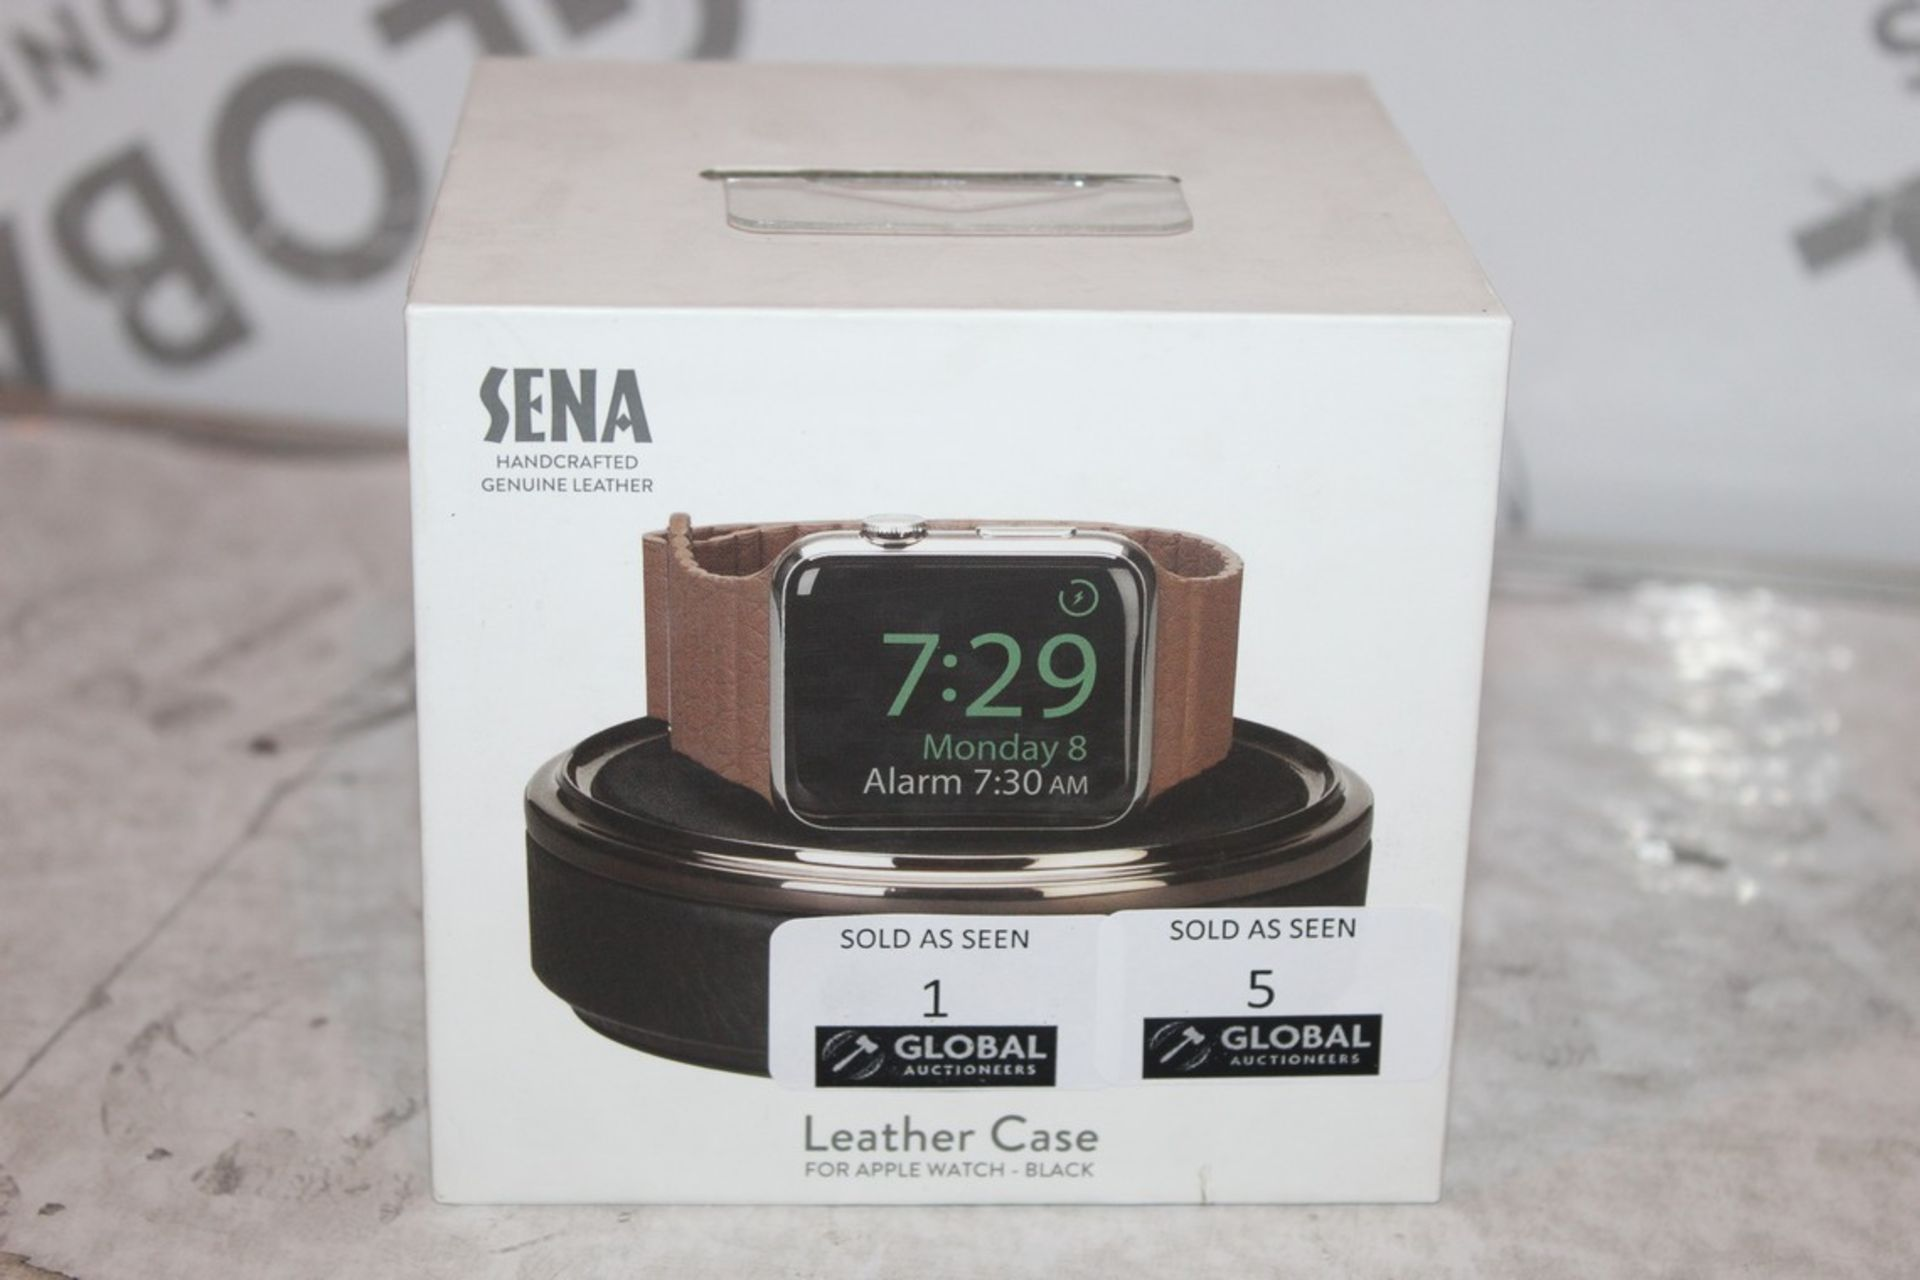 Lot 3 - Boxed Brand-new Sena, Hand Crafted genuine Leather, Black Apple Watch Box, RRP£45.00